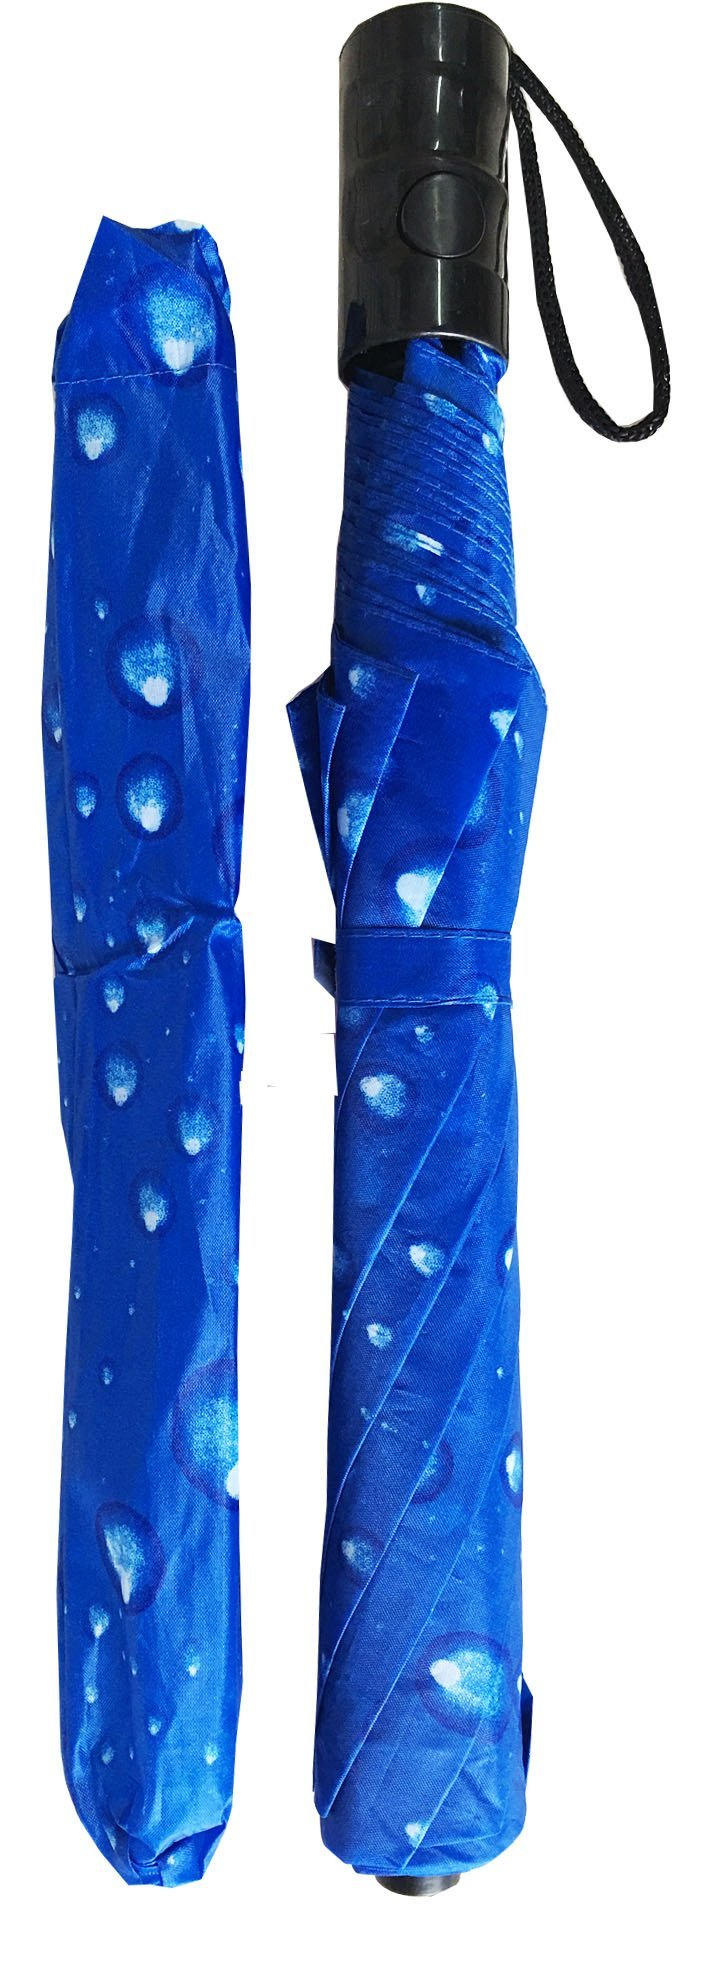 Automatic Folding compact umbrella (blue) by Conch umbrellas (Image #3)